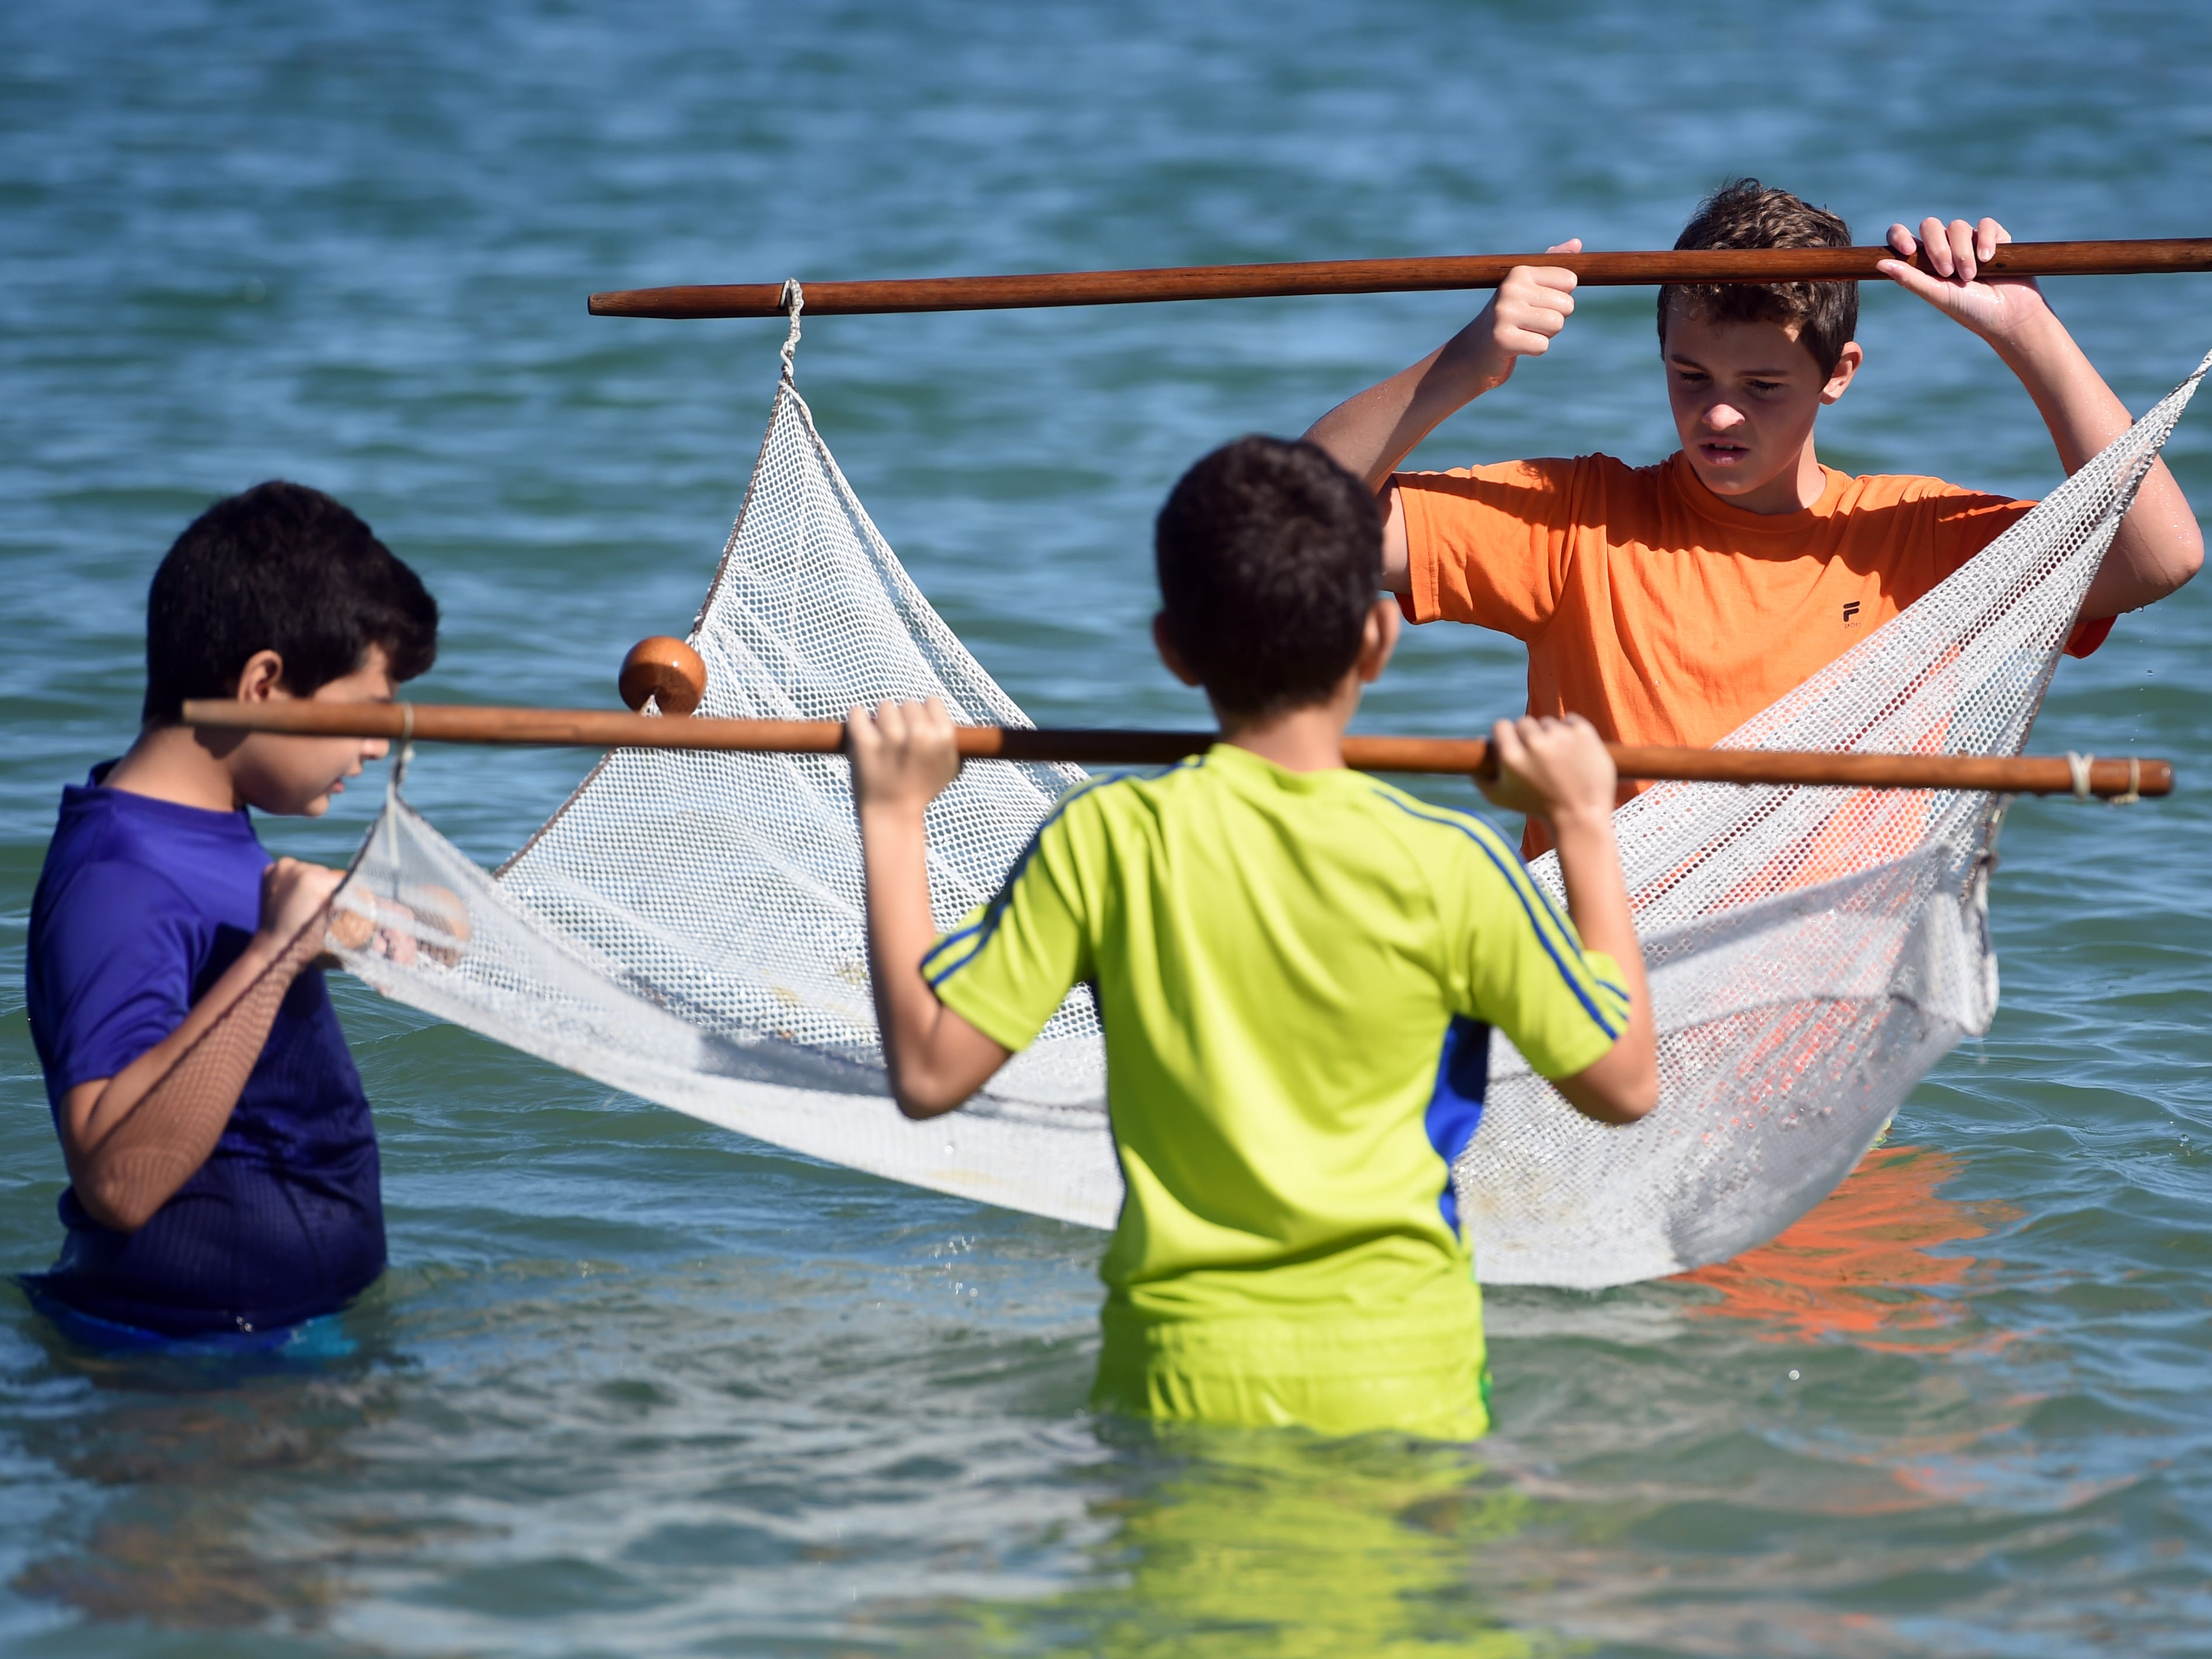 Homeschool students Alex (from left), 11, and Victor Borges, 14, and Ethan Degoede, 13, seine for plant and animal life in the Indian River Lagoon near the Fort Pierce Inlet on Friday, Feb. 8, 2019 during a Homeschool Hopper biodiversity program at the St. Lucie County Aquarium. The boys, along with 14 other students, studied two sites on the lagoon comparing the biodiversity and health of each site.